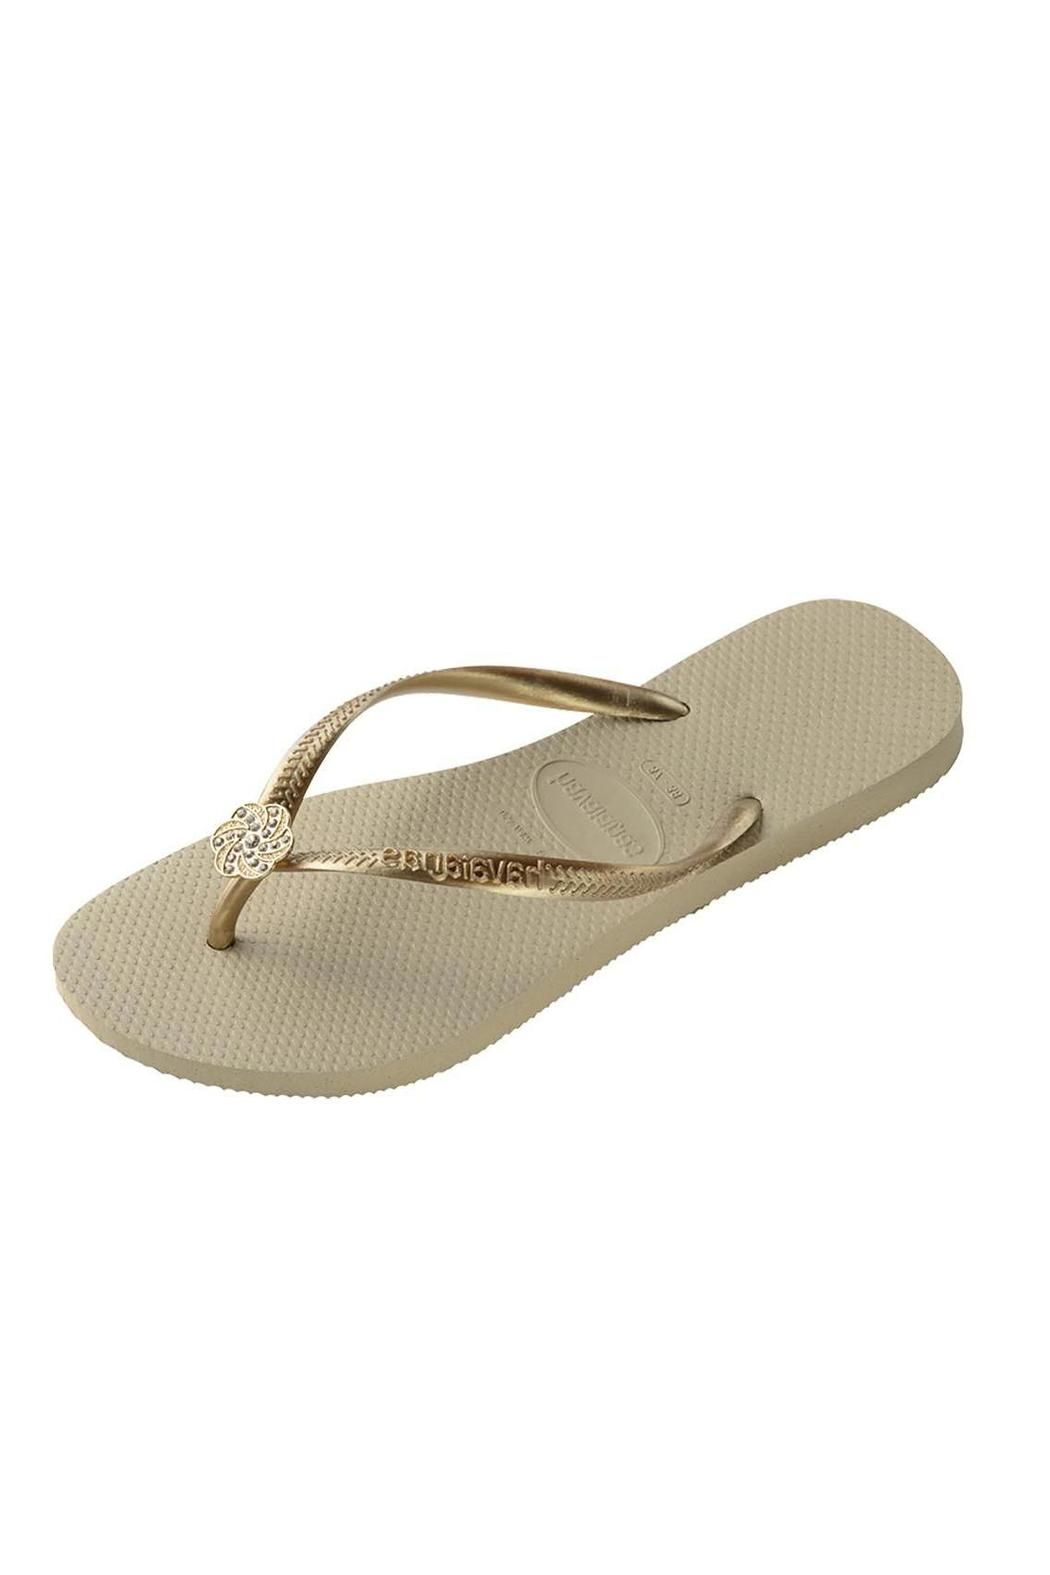 9f6c92df81857b A tonal Havaianas logo and signature textured footbed provide style and  comfort. Cushioned footbed with textured rice pattern and rubber flip flop  ...